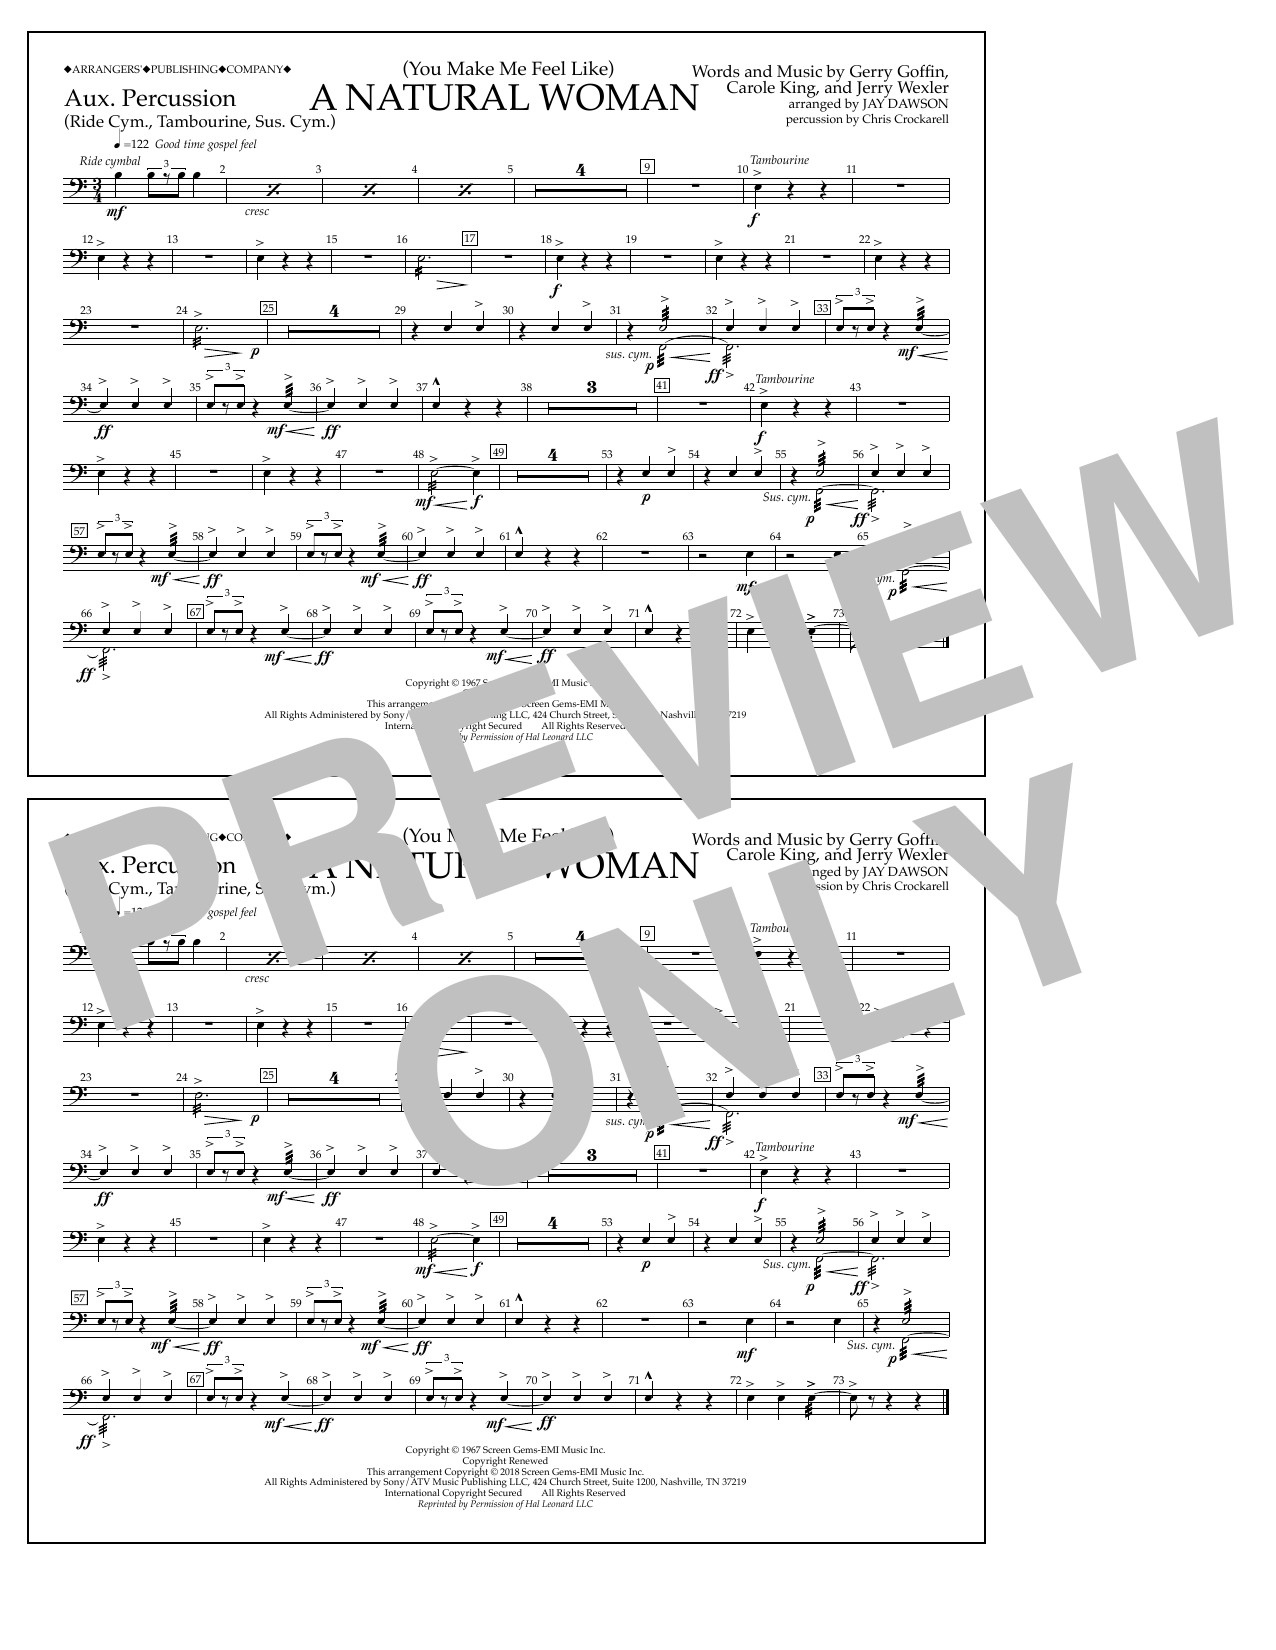 Download Aretha Franklin '(You Make Me Feel Like) A Natural Woman (arr. Jay Dawson) - Aux Percussion' Digital Sheet Music Notes & Chords and start playing in minutes